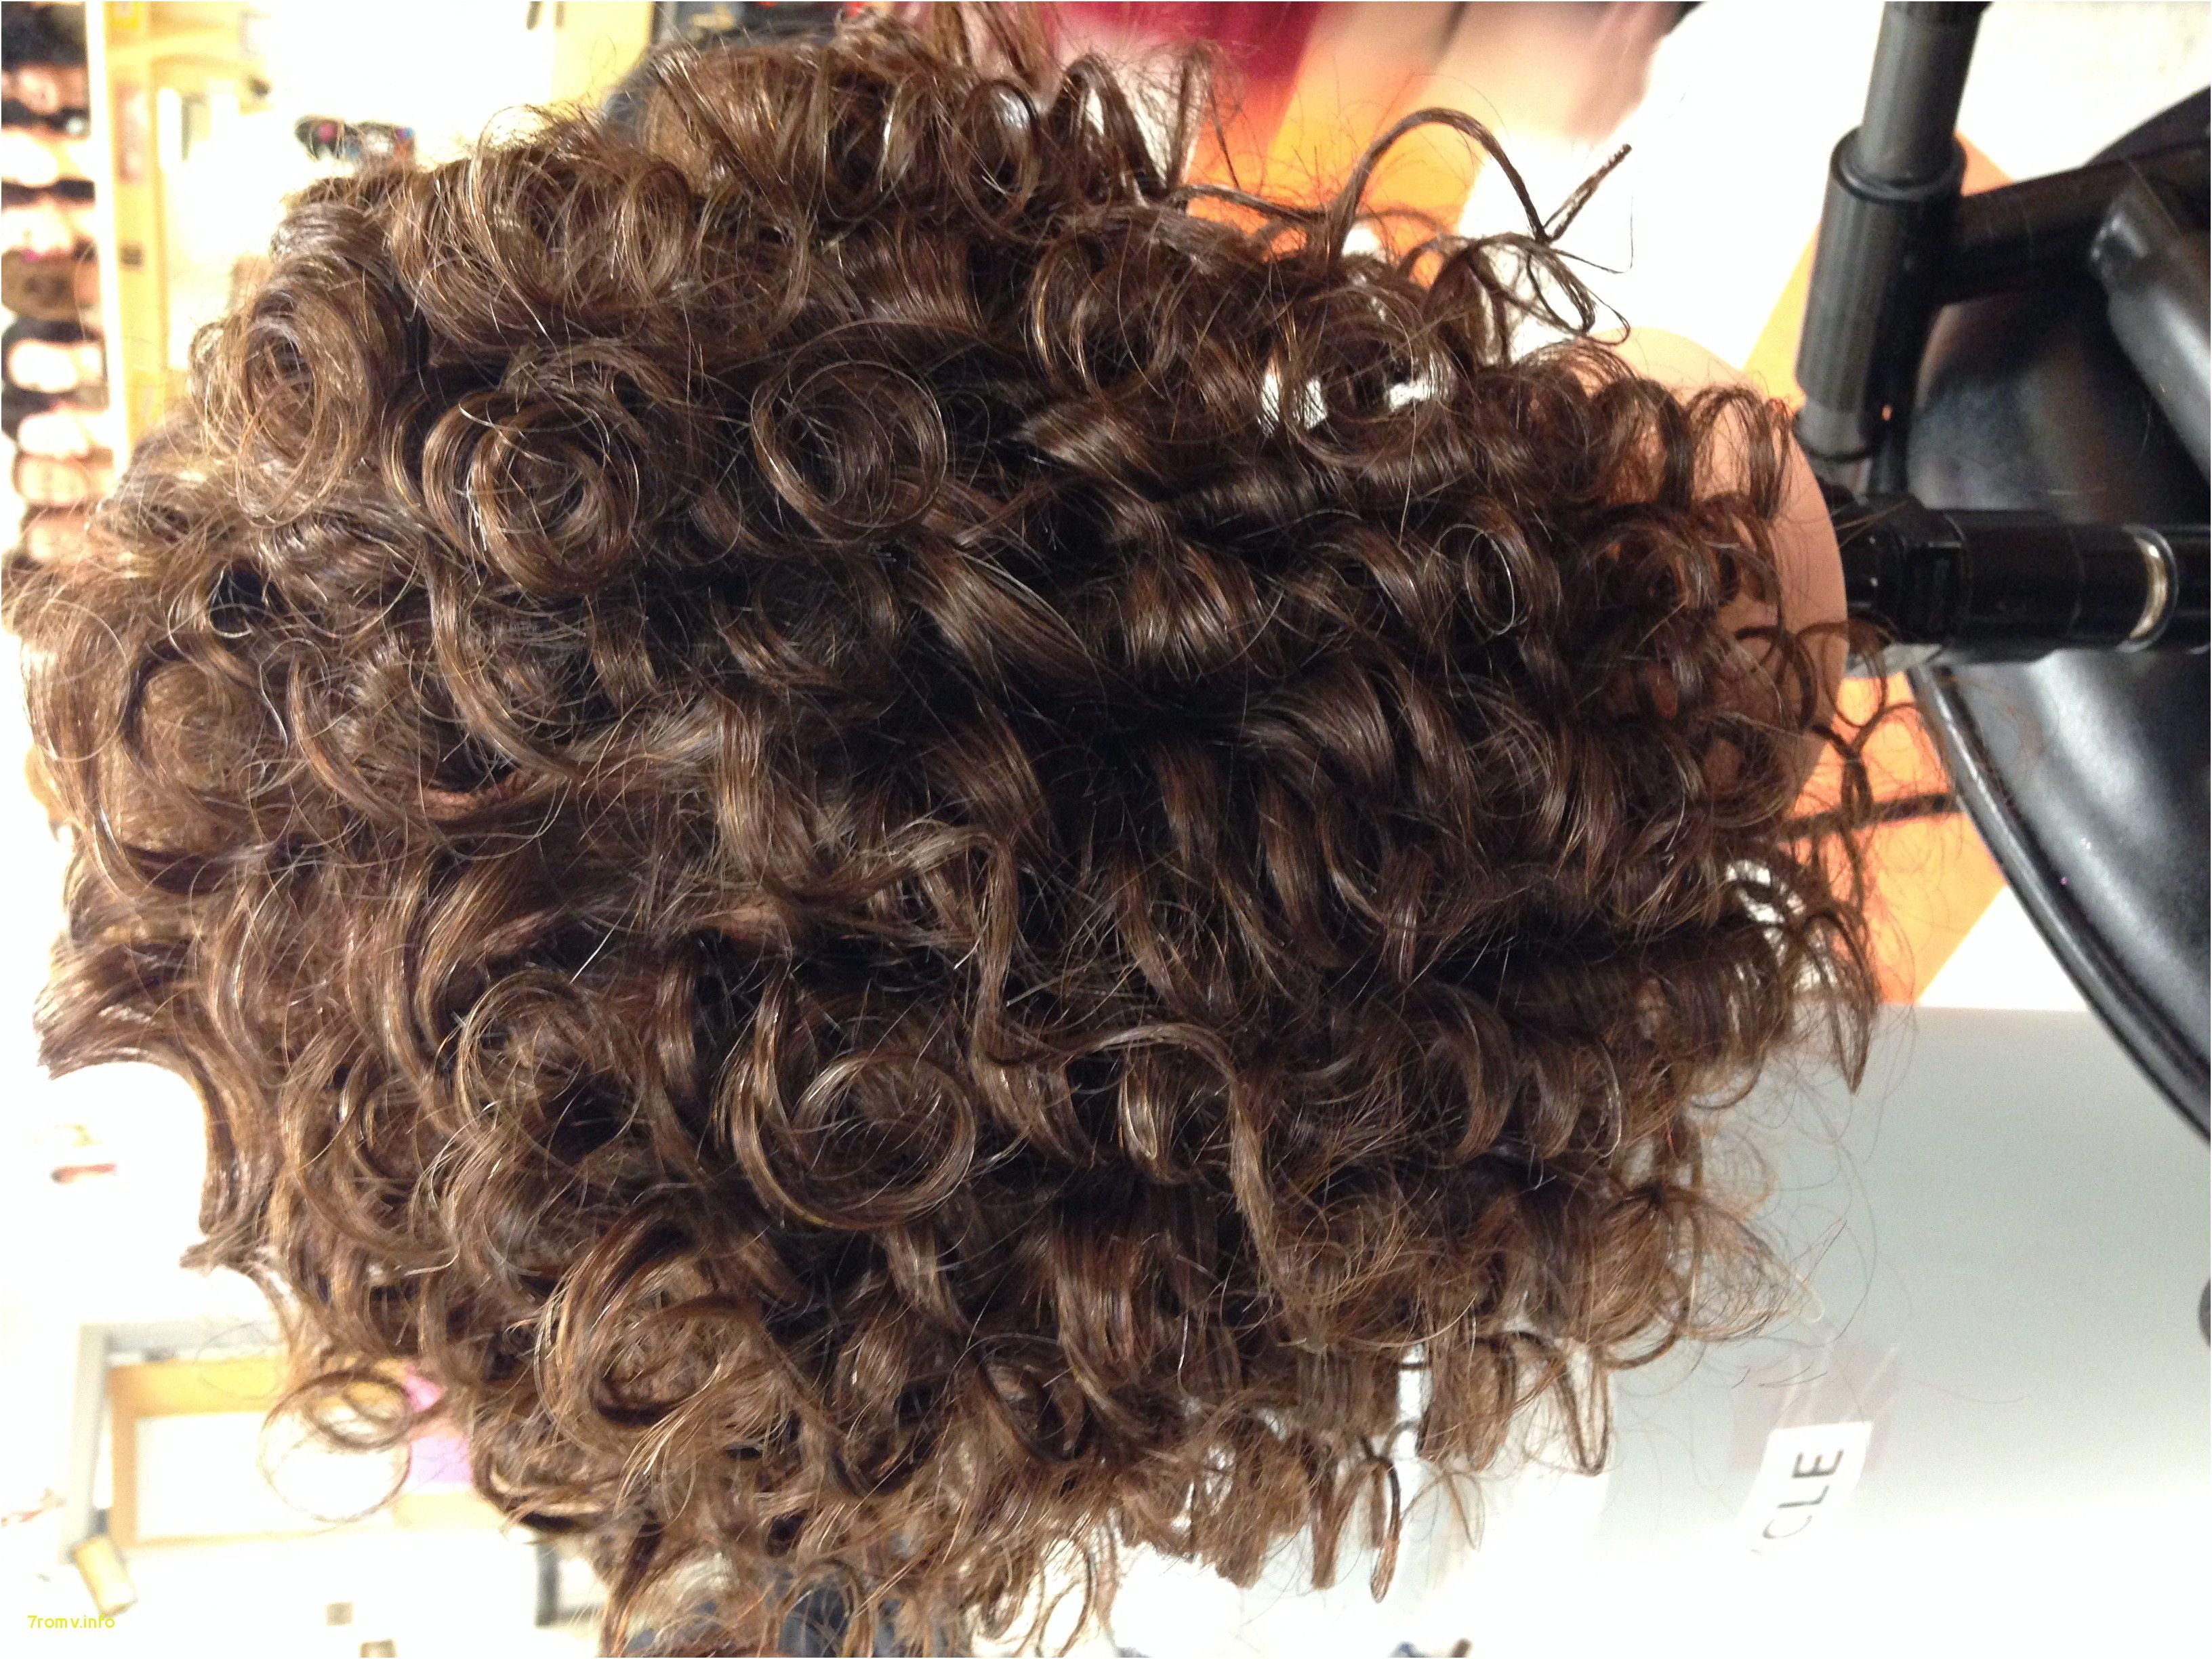 Spiral Perms Before And After Inspirational Back View Spiral Perm Perms Pinteres Cheryl Strimple Sp In 2020 Permed Hairstyles Spiral Perm Perms Before And After